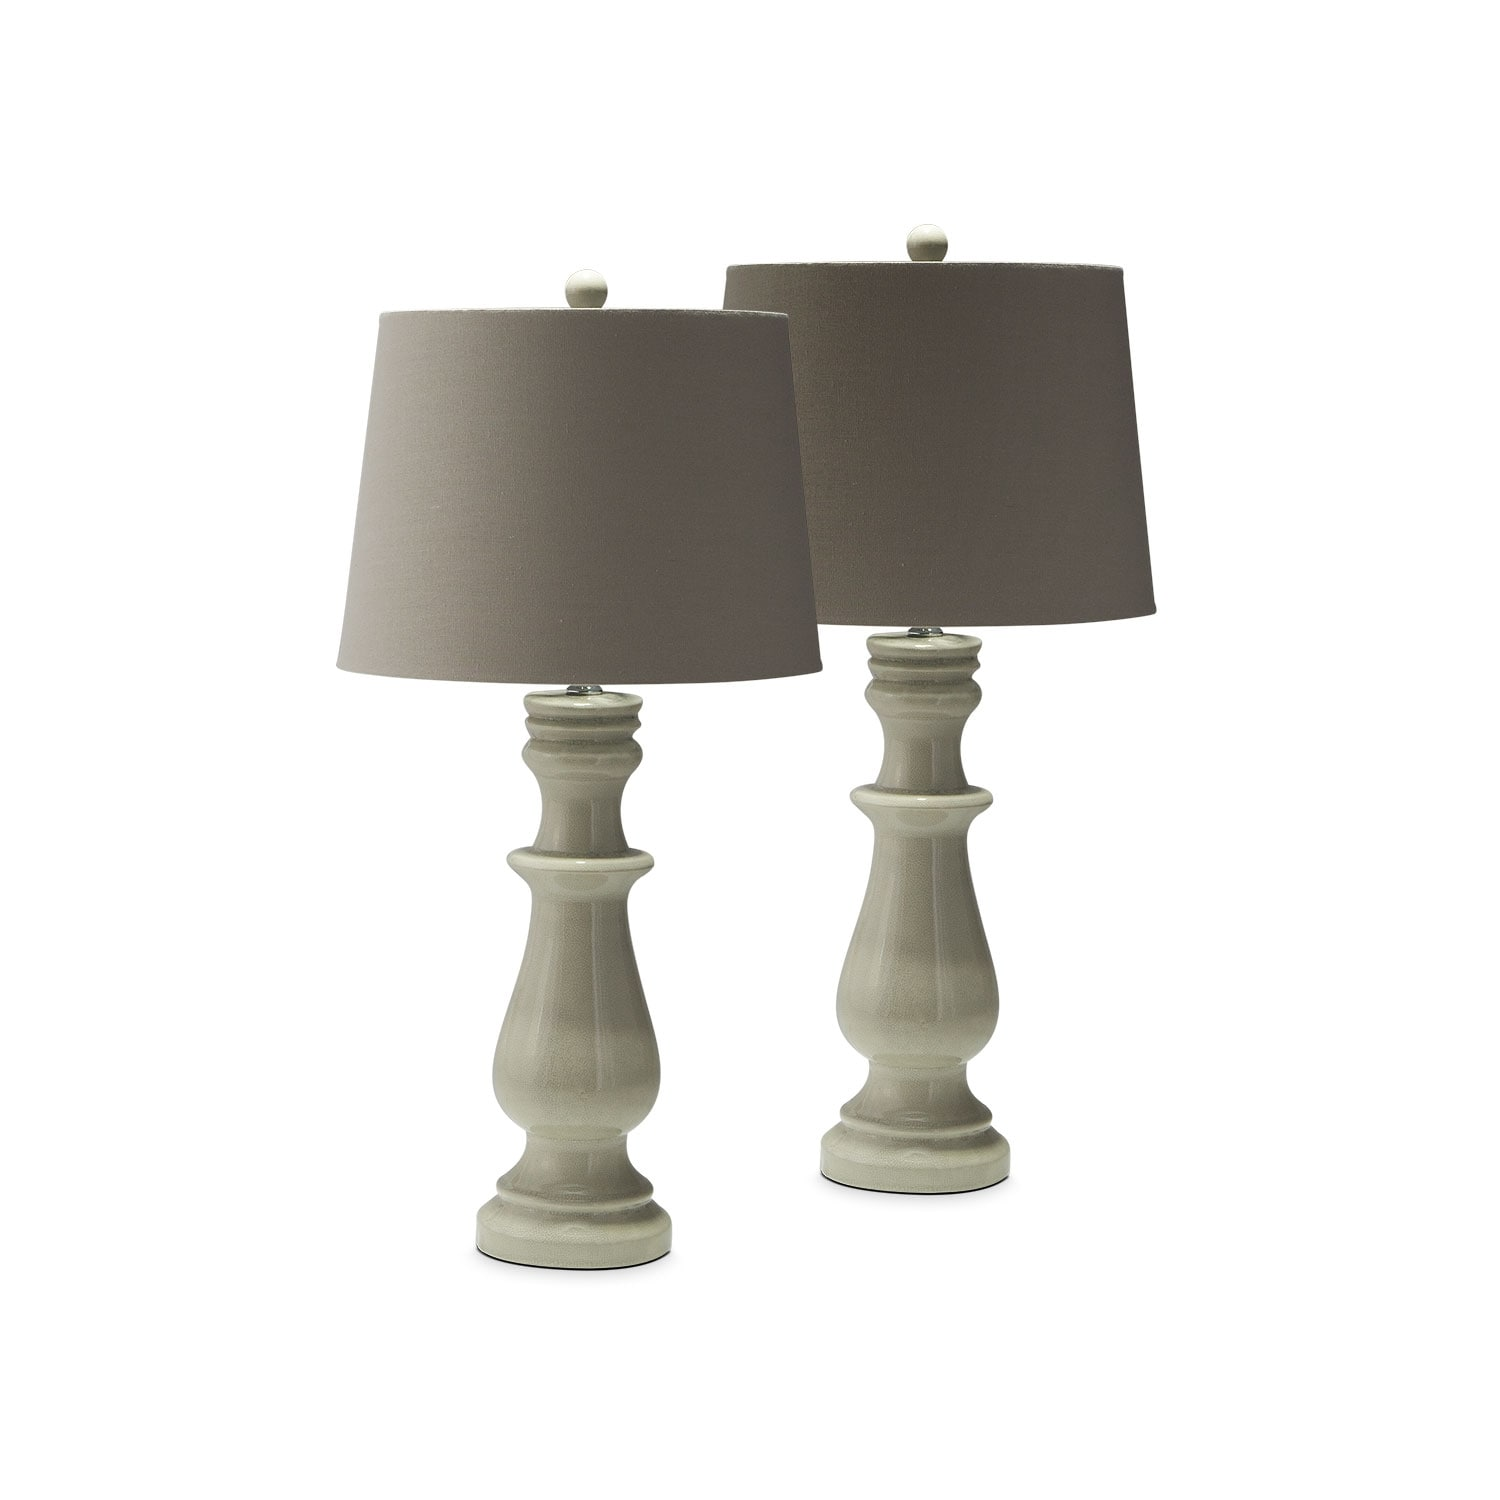 Ivory Ceramic 2-Pack Table Lamp Set